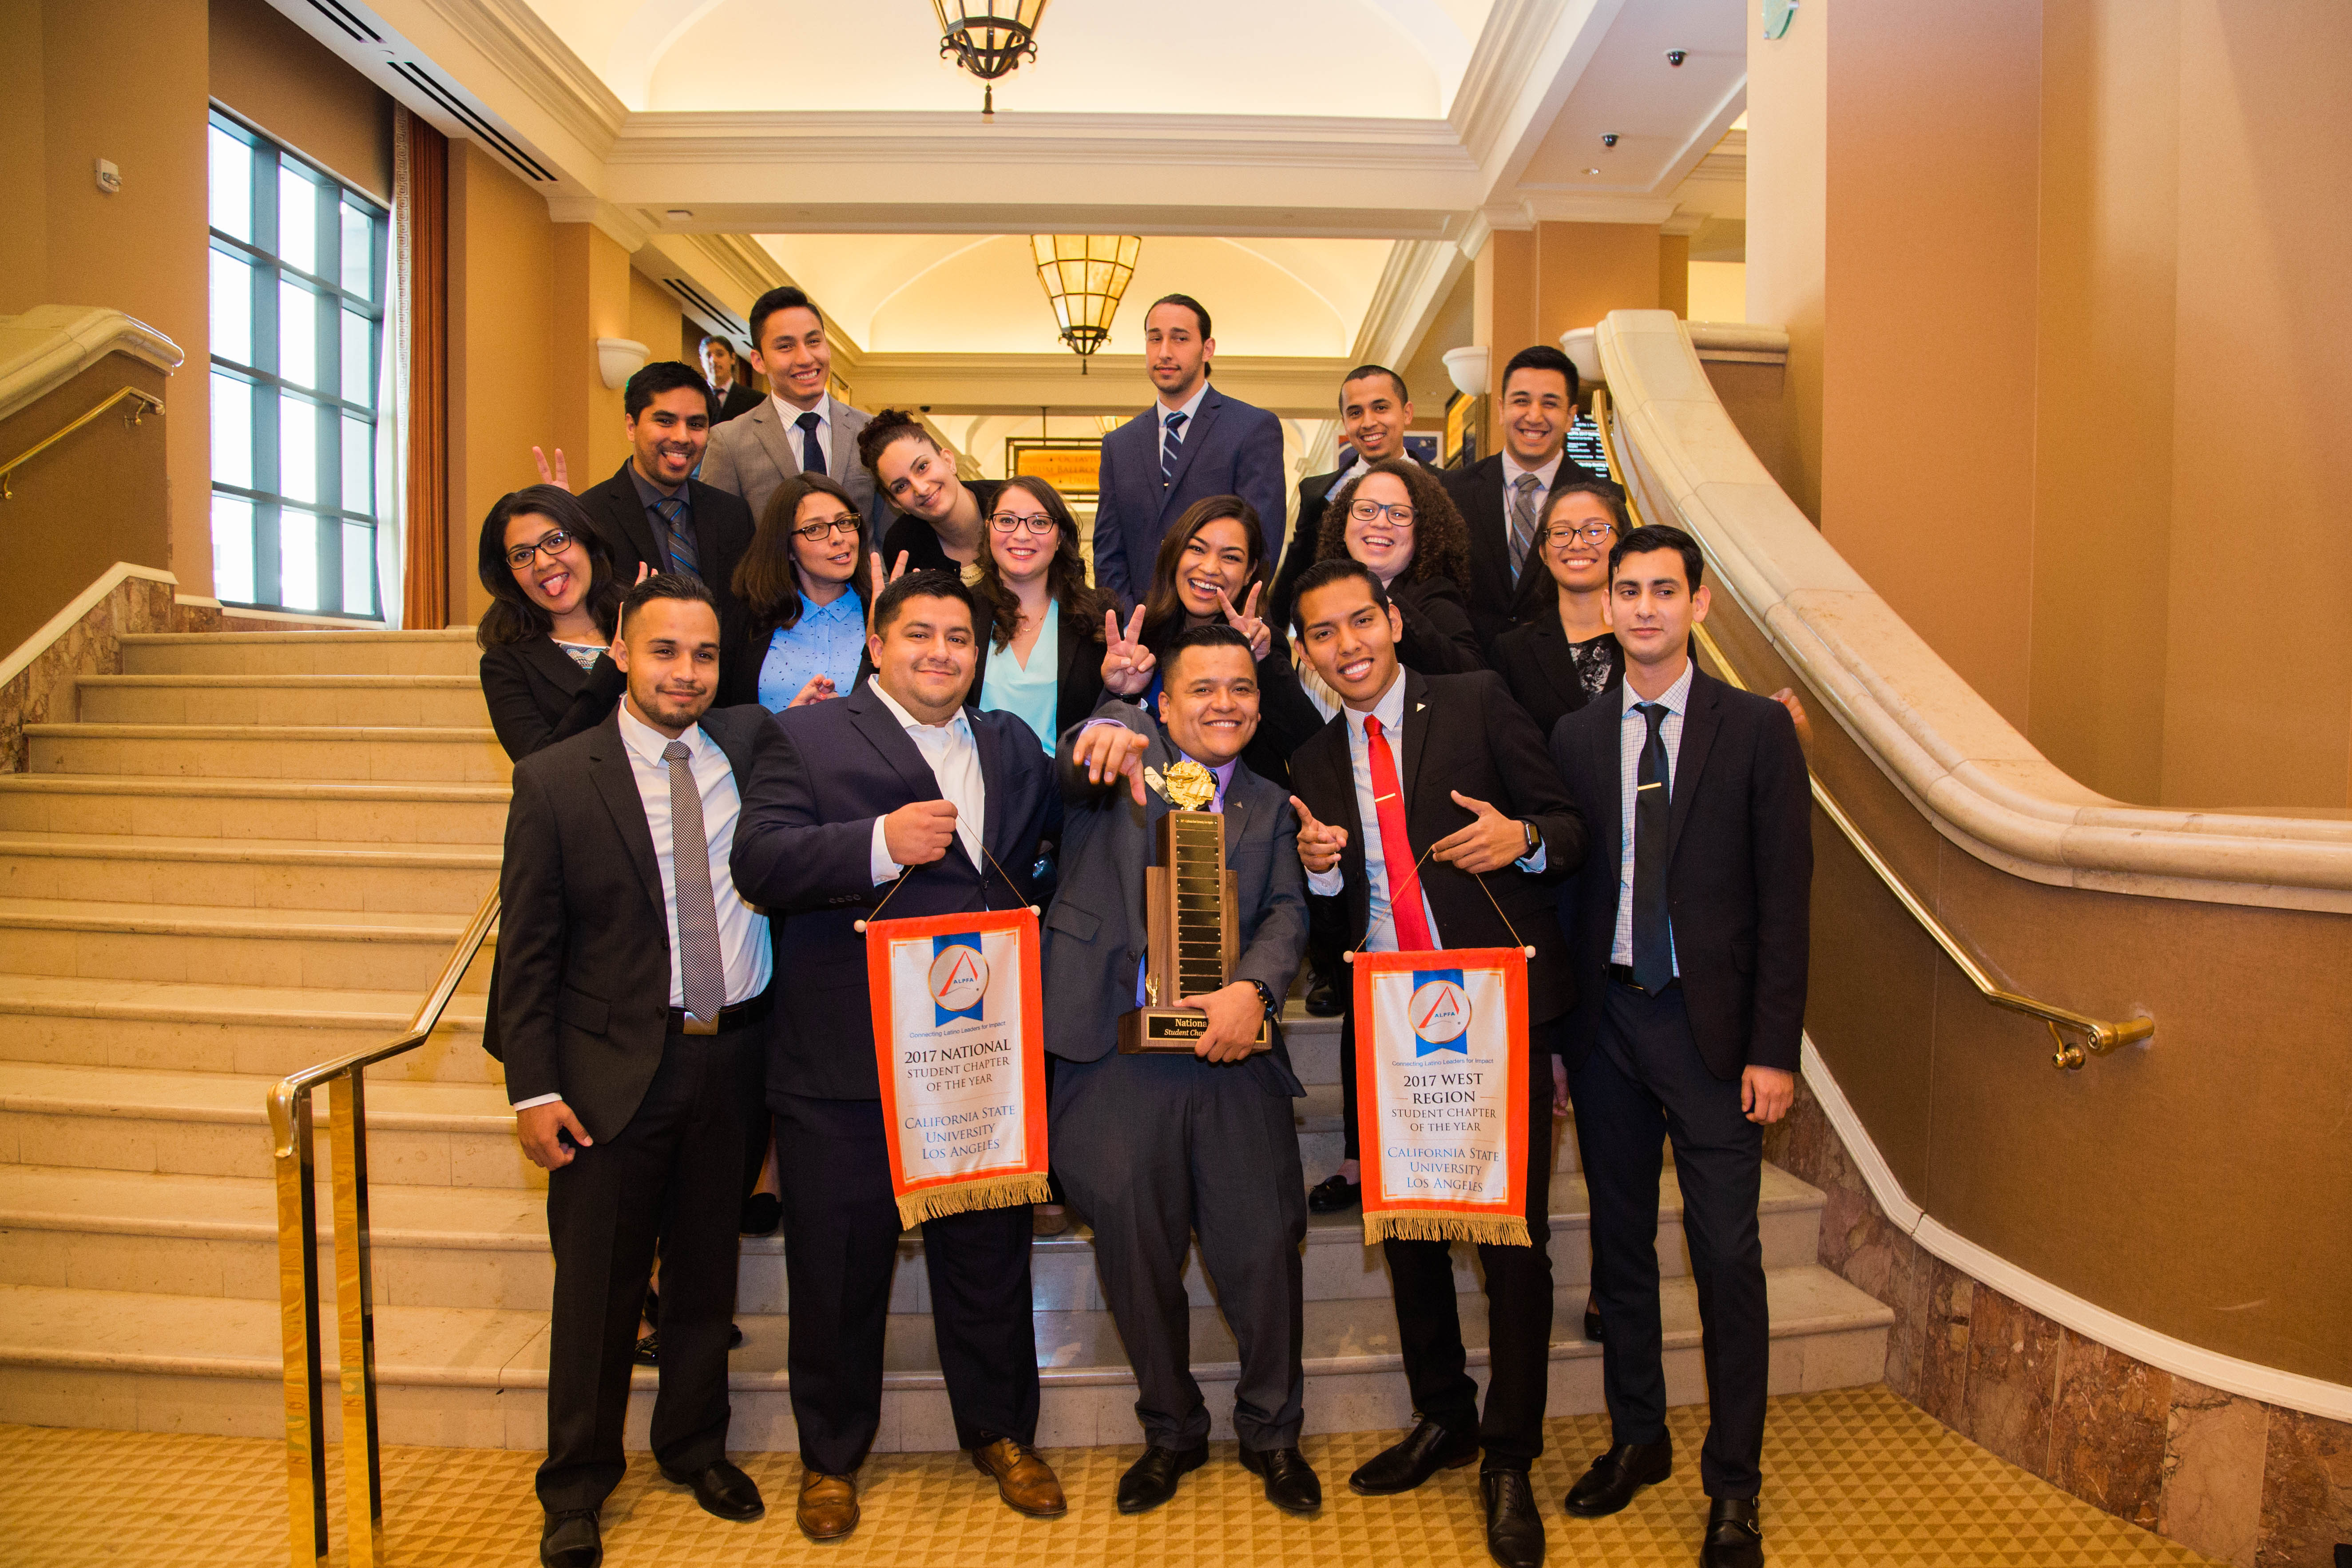 Cal State LA's ALPFA Chapter Earns the 2017 National Student Chapter Award